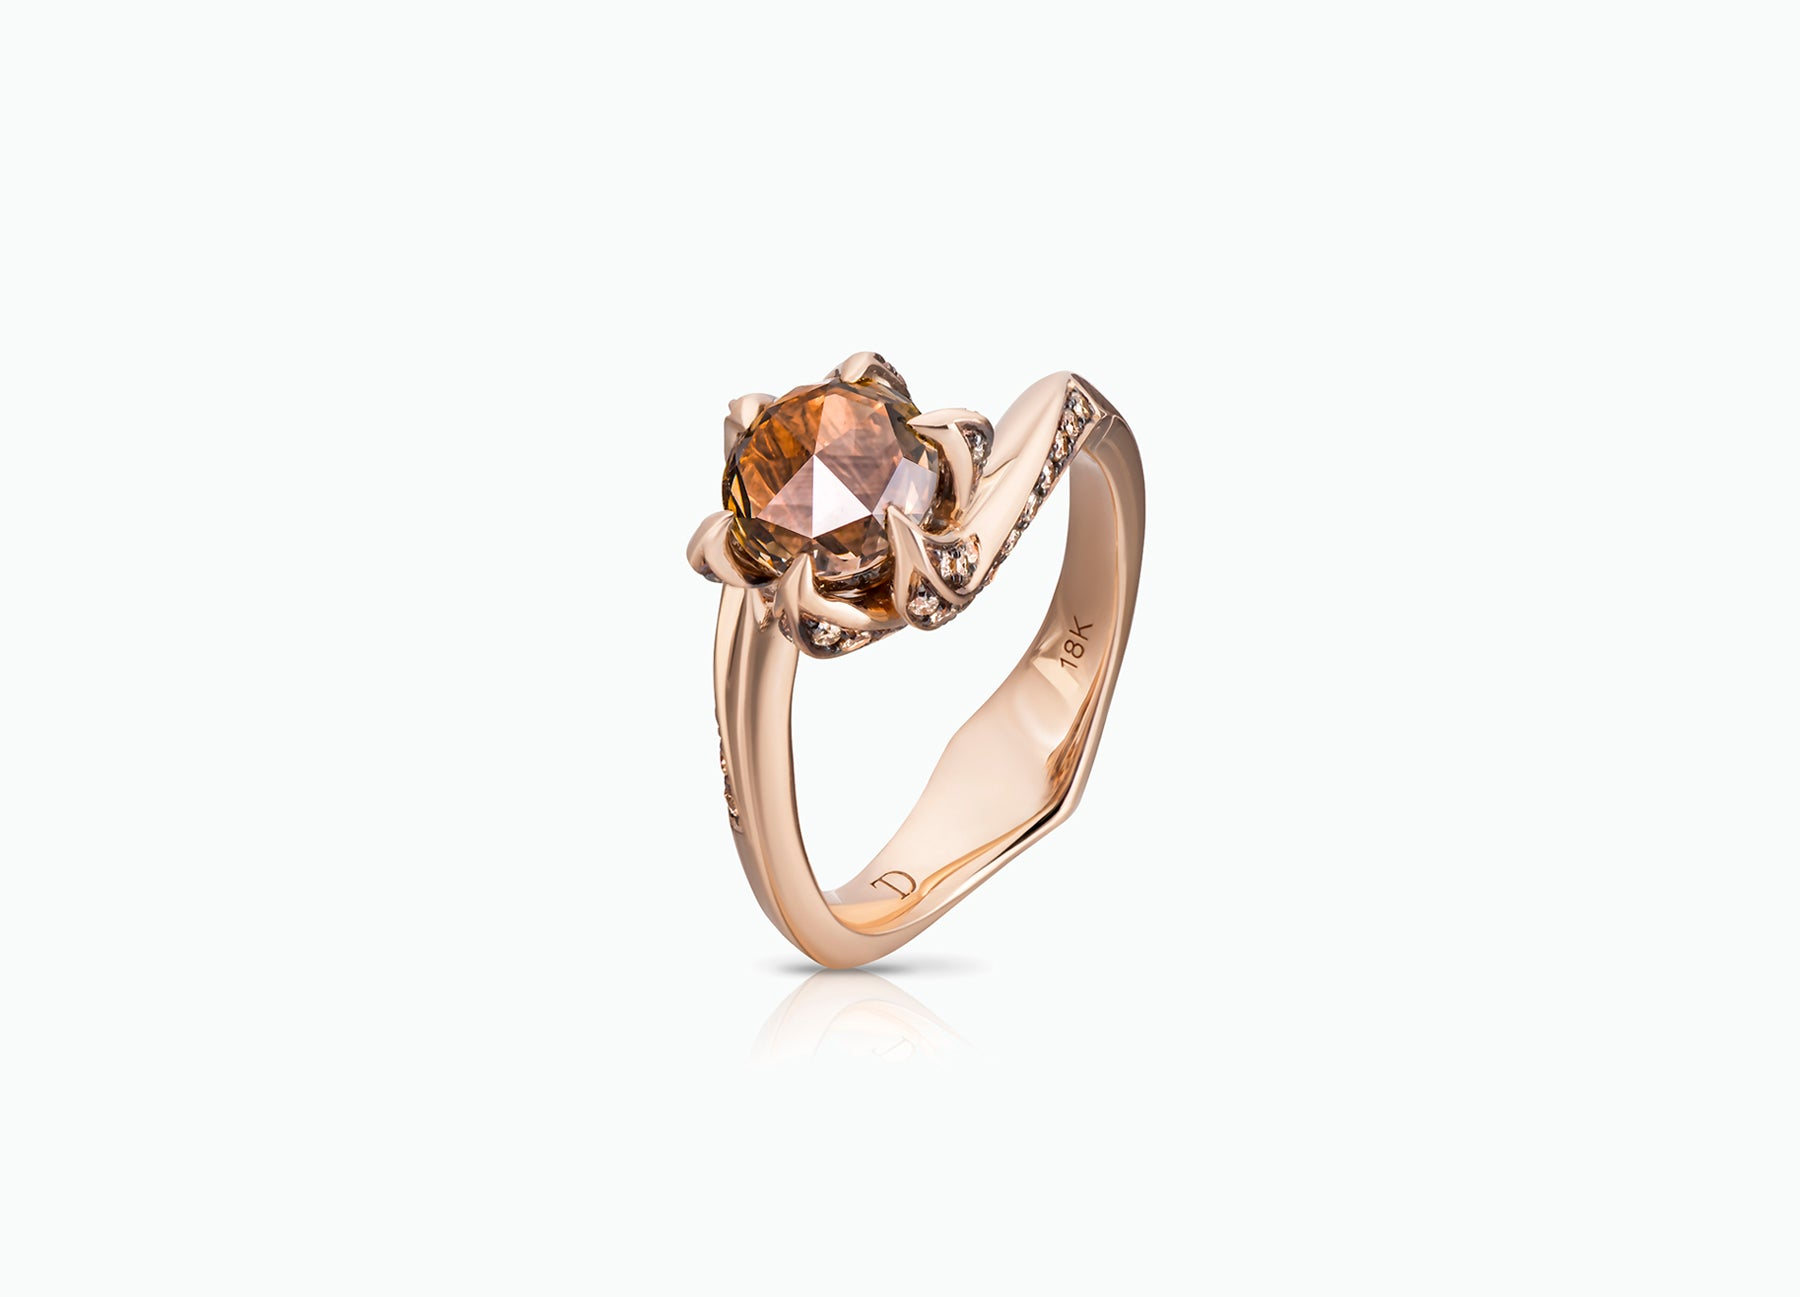 BROWN DIAMOND LILY PAD RING